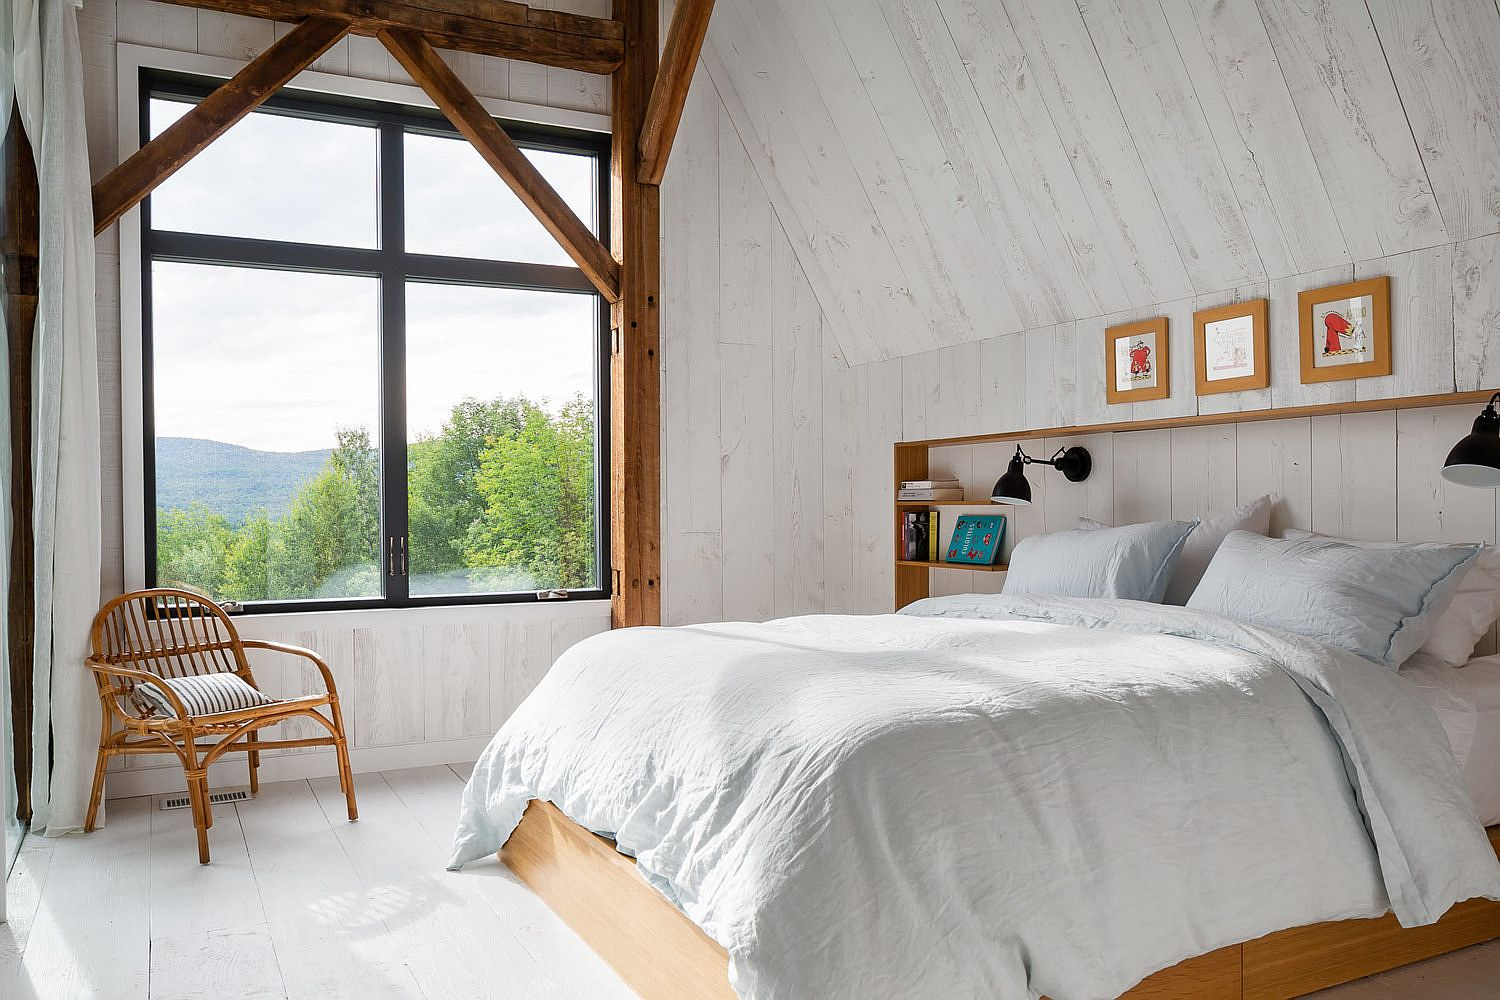 Bedroom in white feels both modern and rustic at the same time